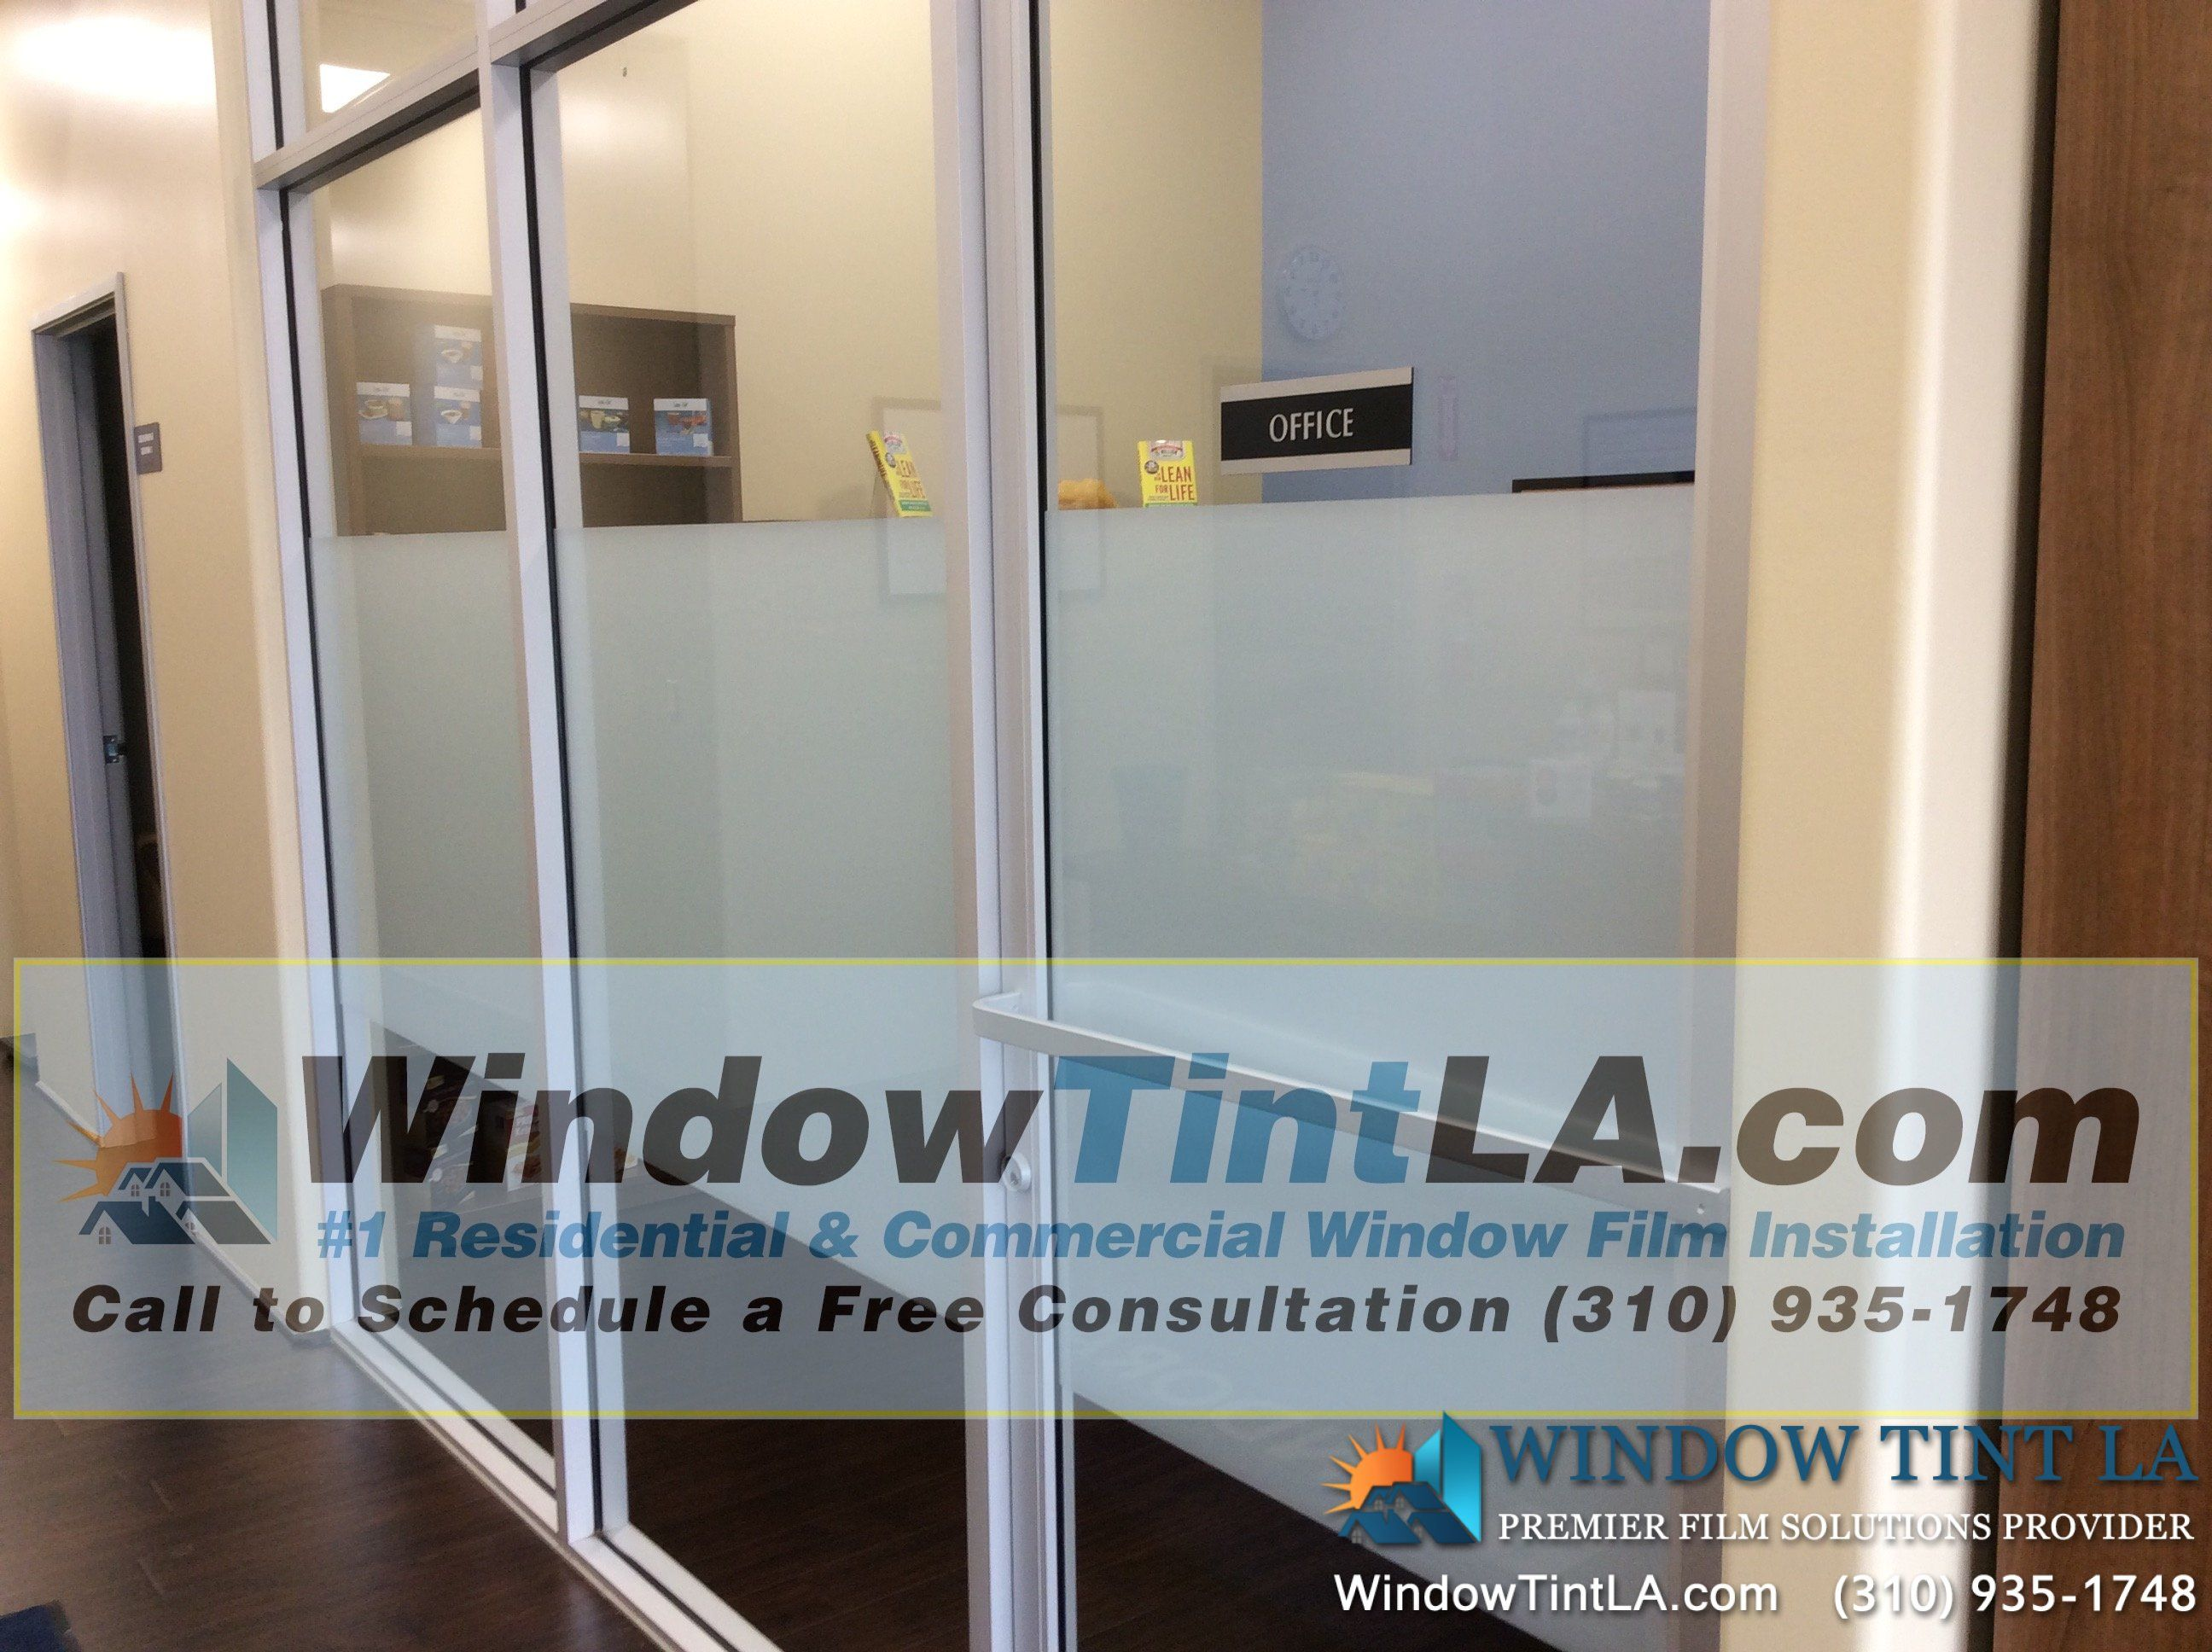 frosted window film is used for conference rooms offices lobbies retail - Frosted Window Film